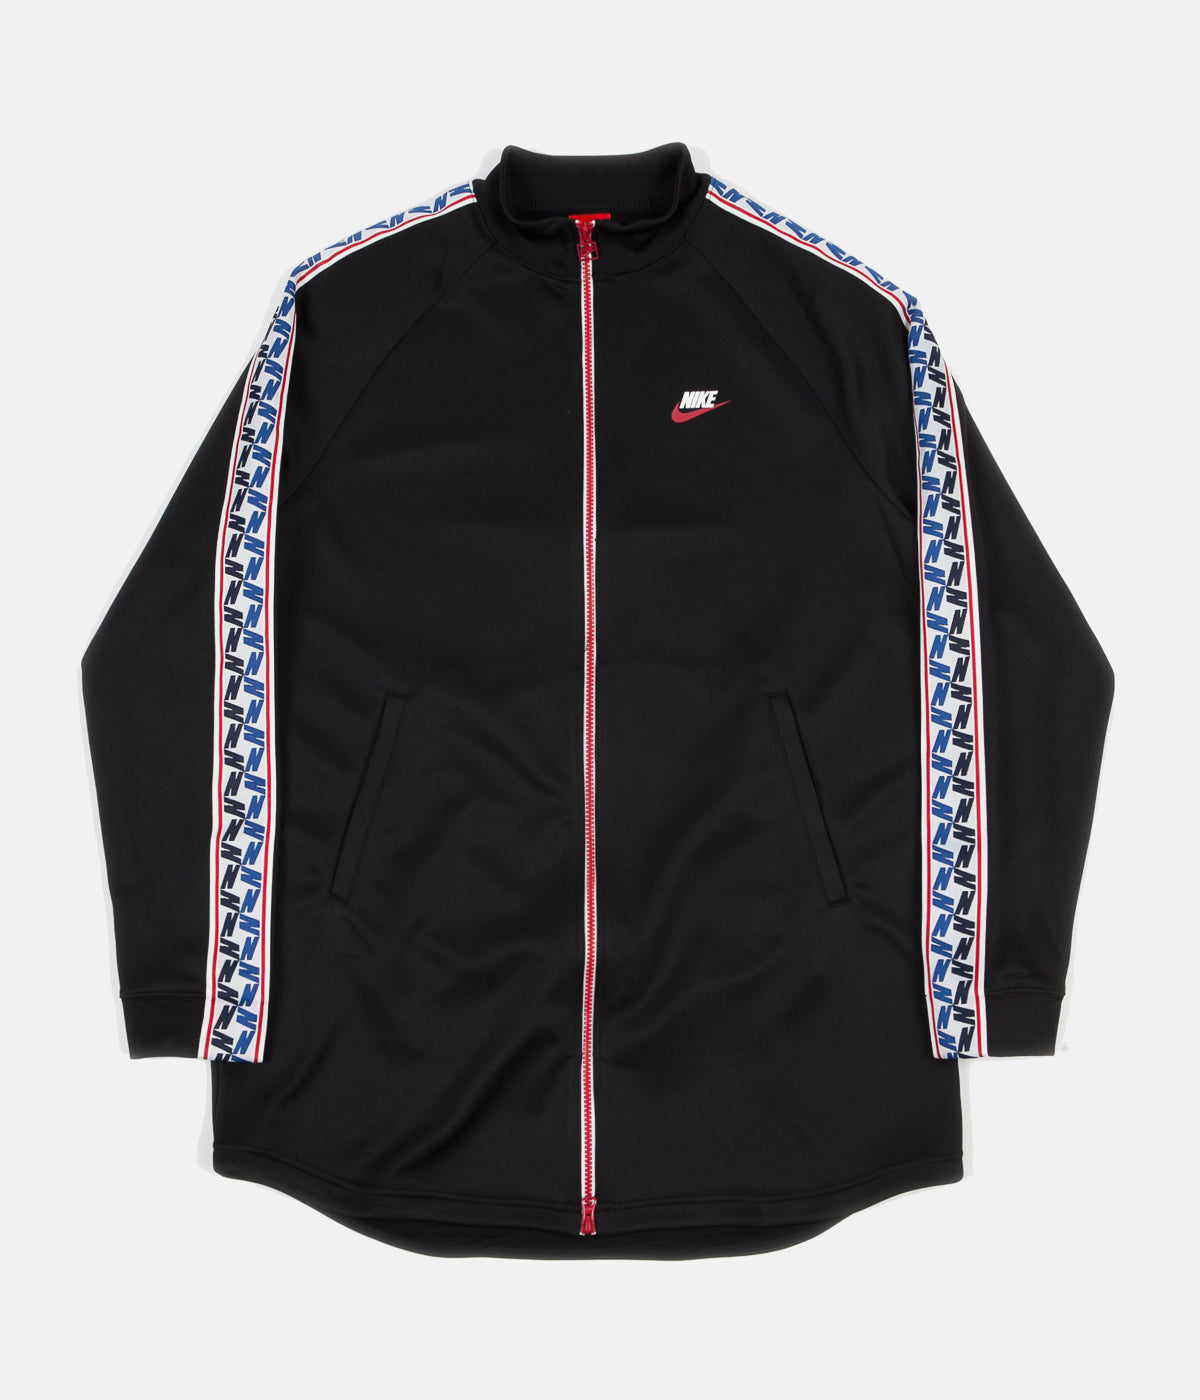 e8606c3c3193 ... Nike Taped Poly Track Jacket - Black   Gym Red   Sail ...